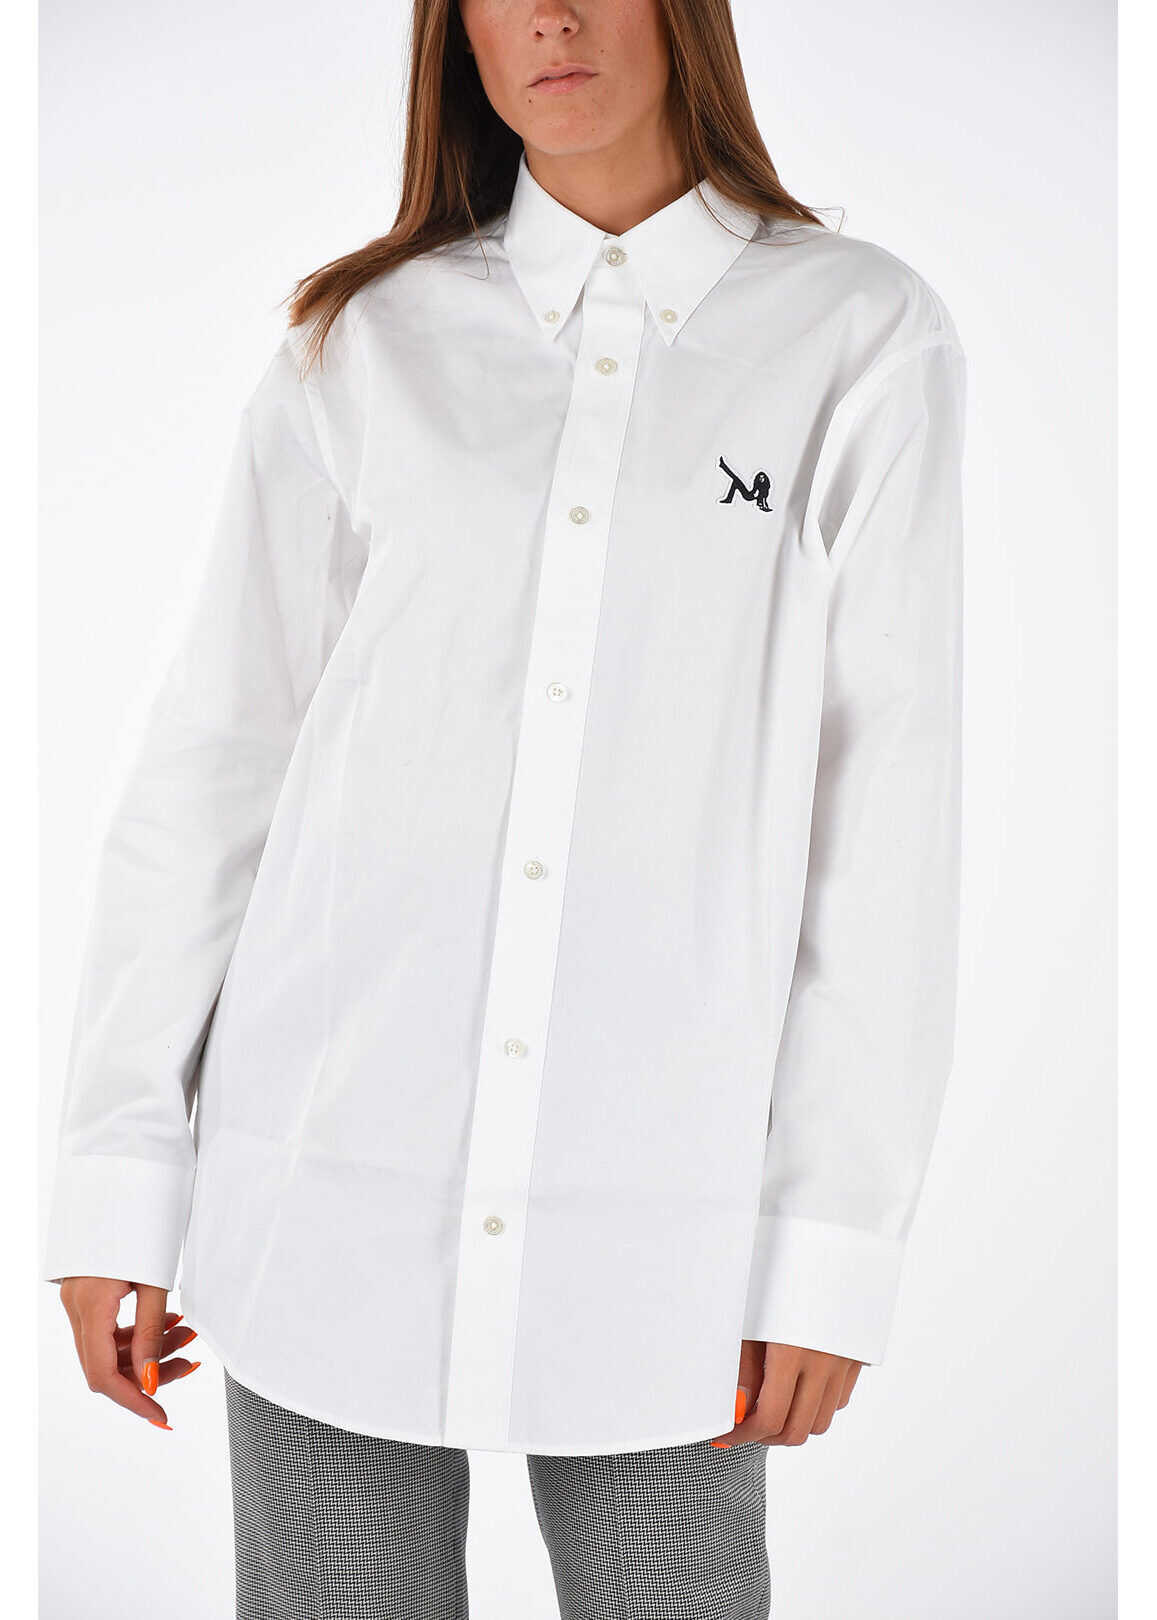 Calvin Klein JEANS EST.1978 Blouse with Embroidery WHITE